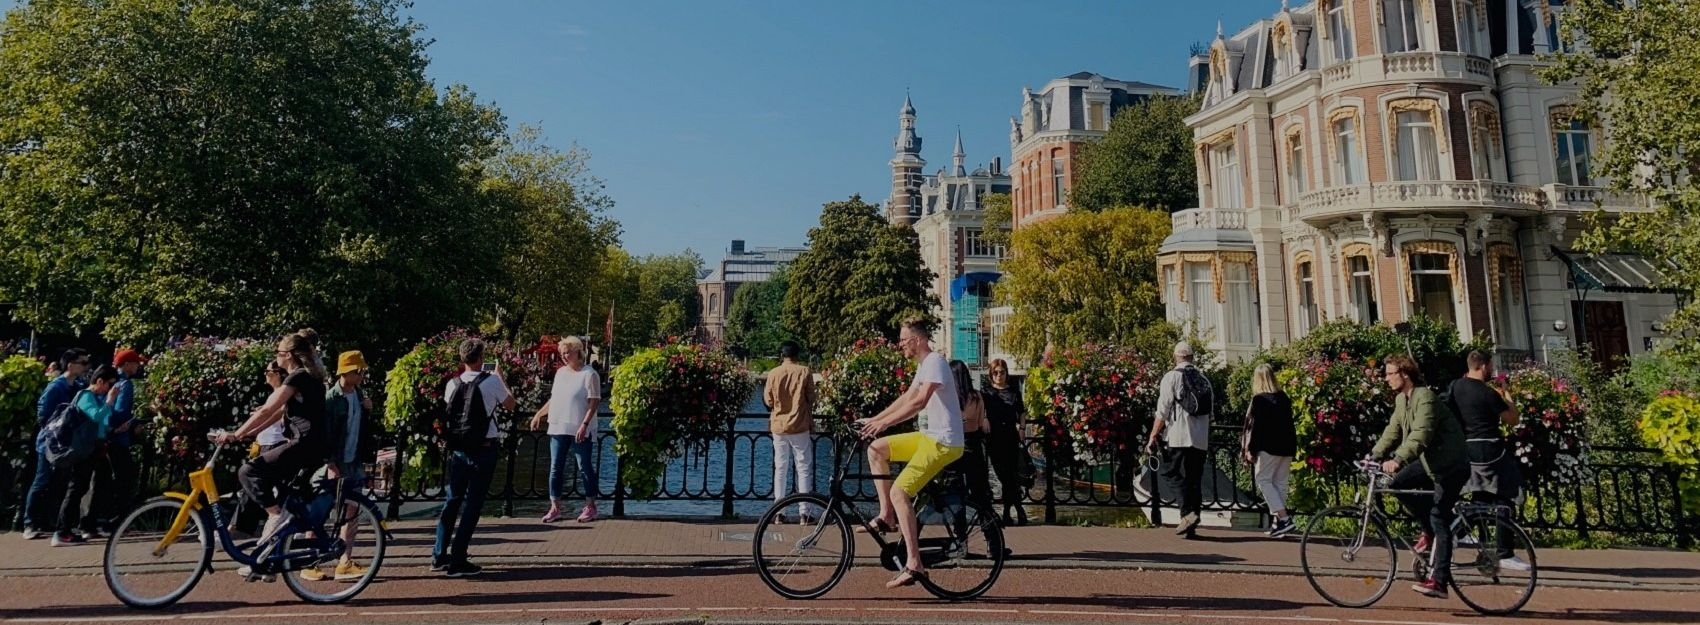 street level photo of people bicycling in amsterdam on a sunny day